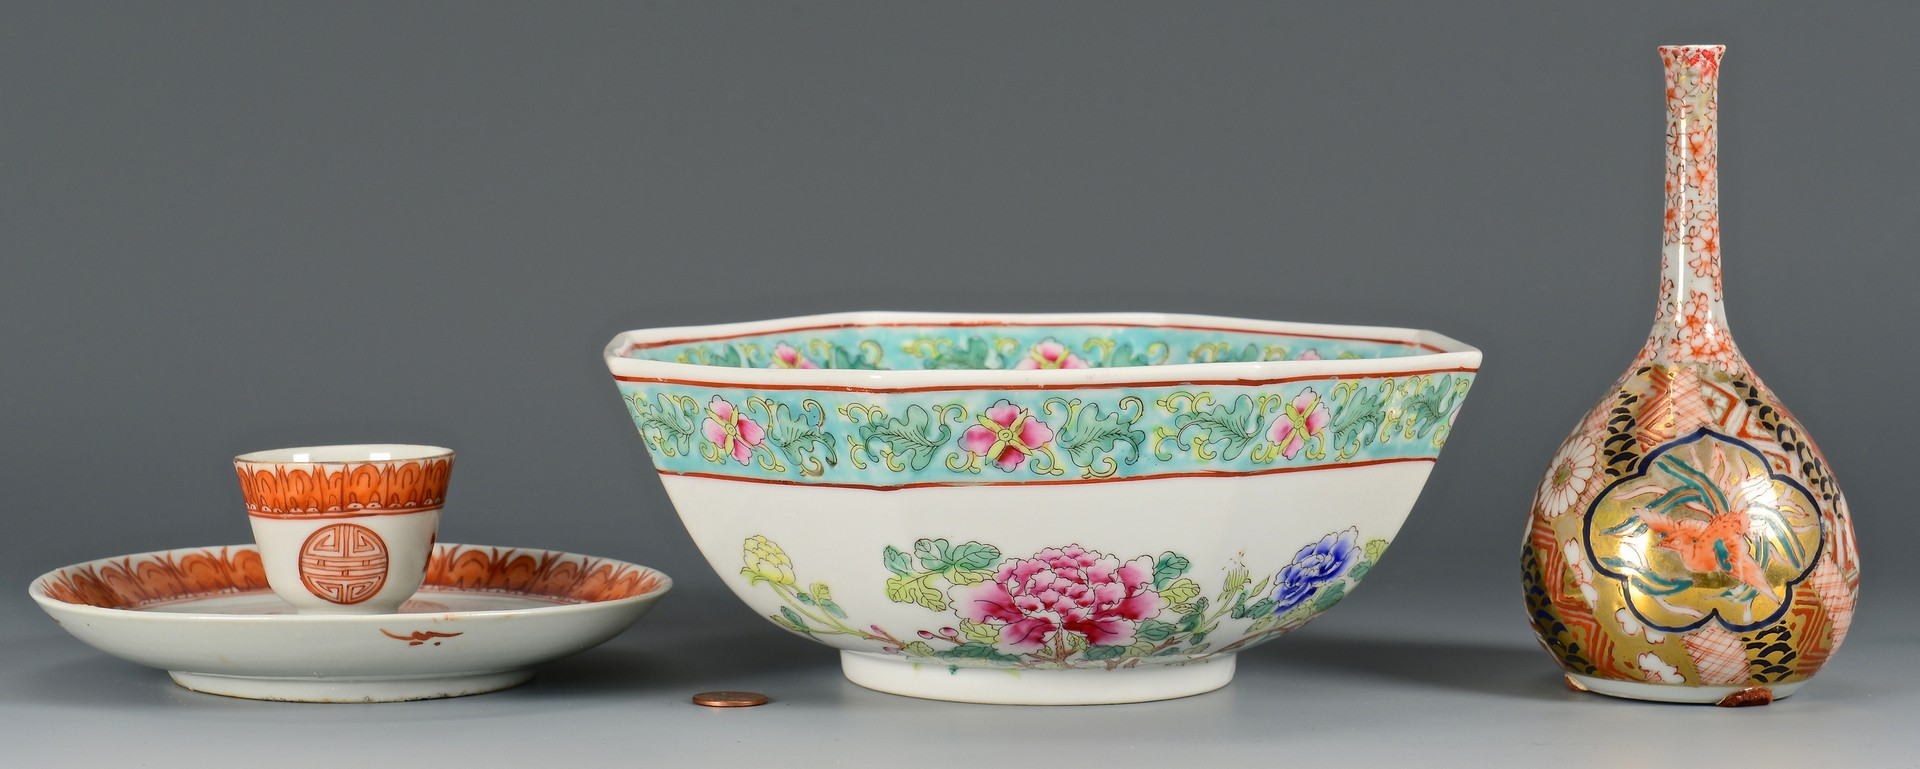 Lot 412: Asian bowl, cup, saucer and vase